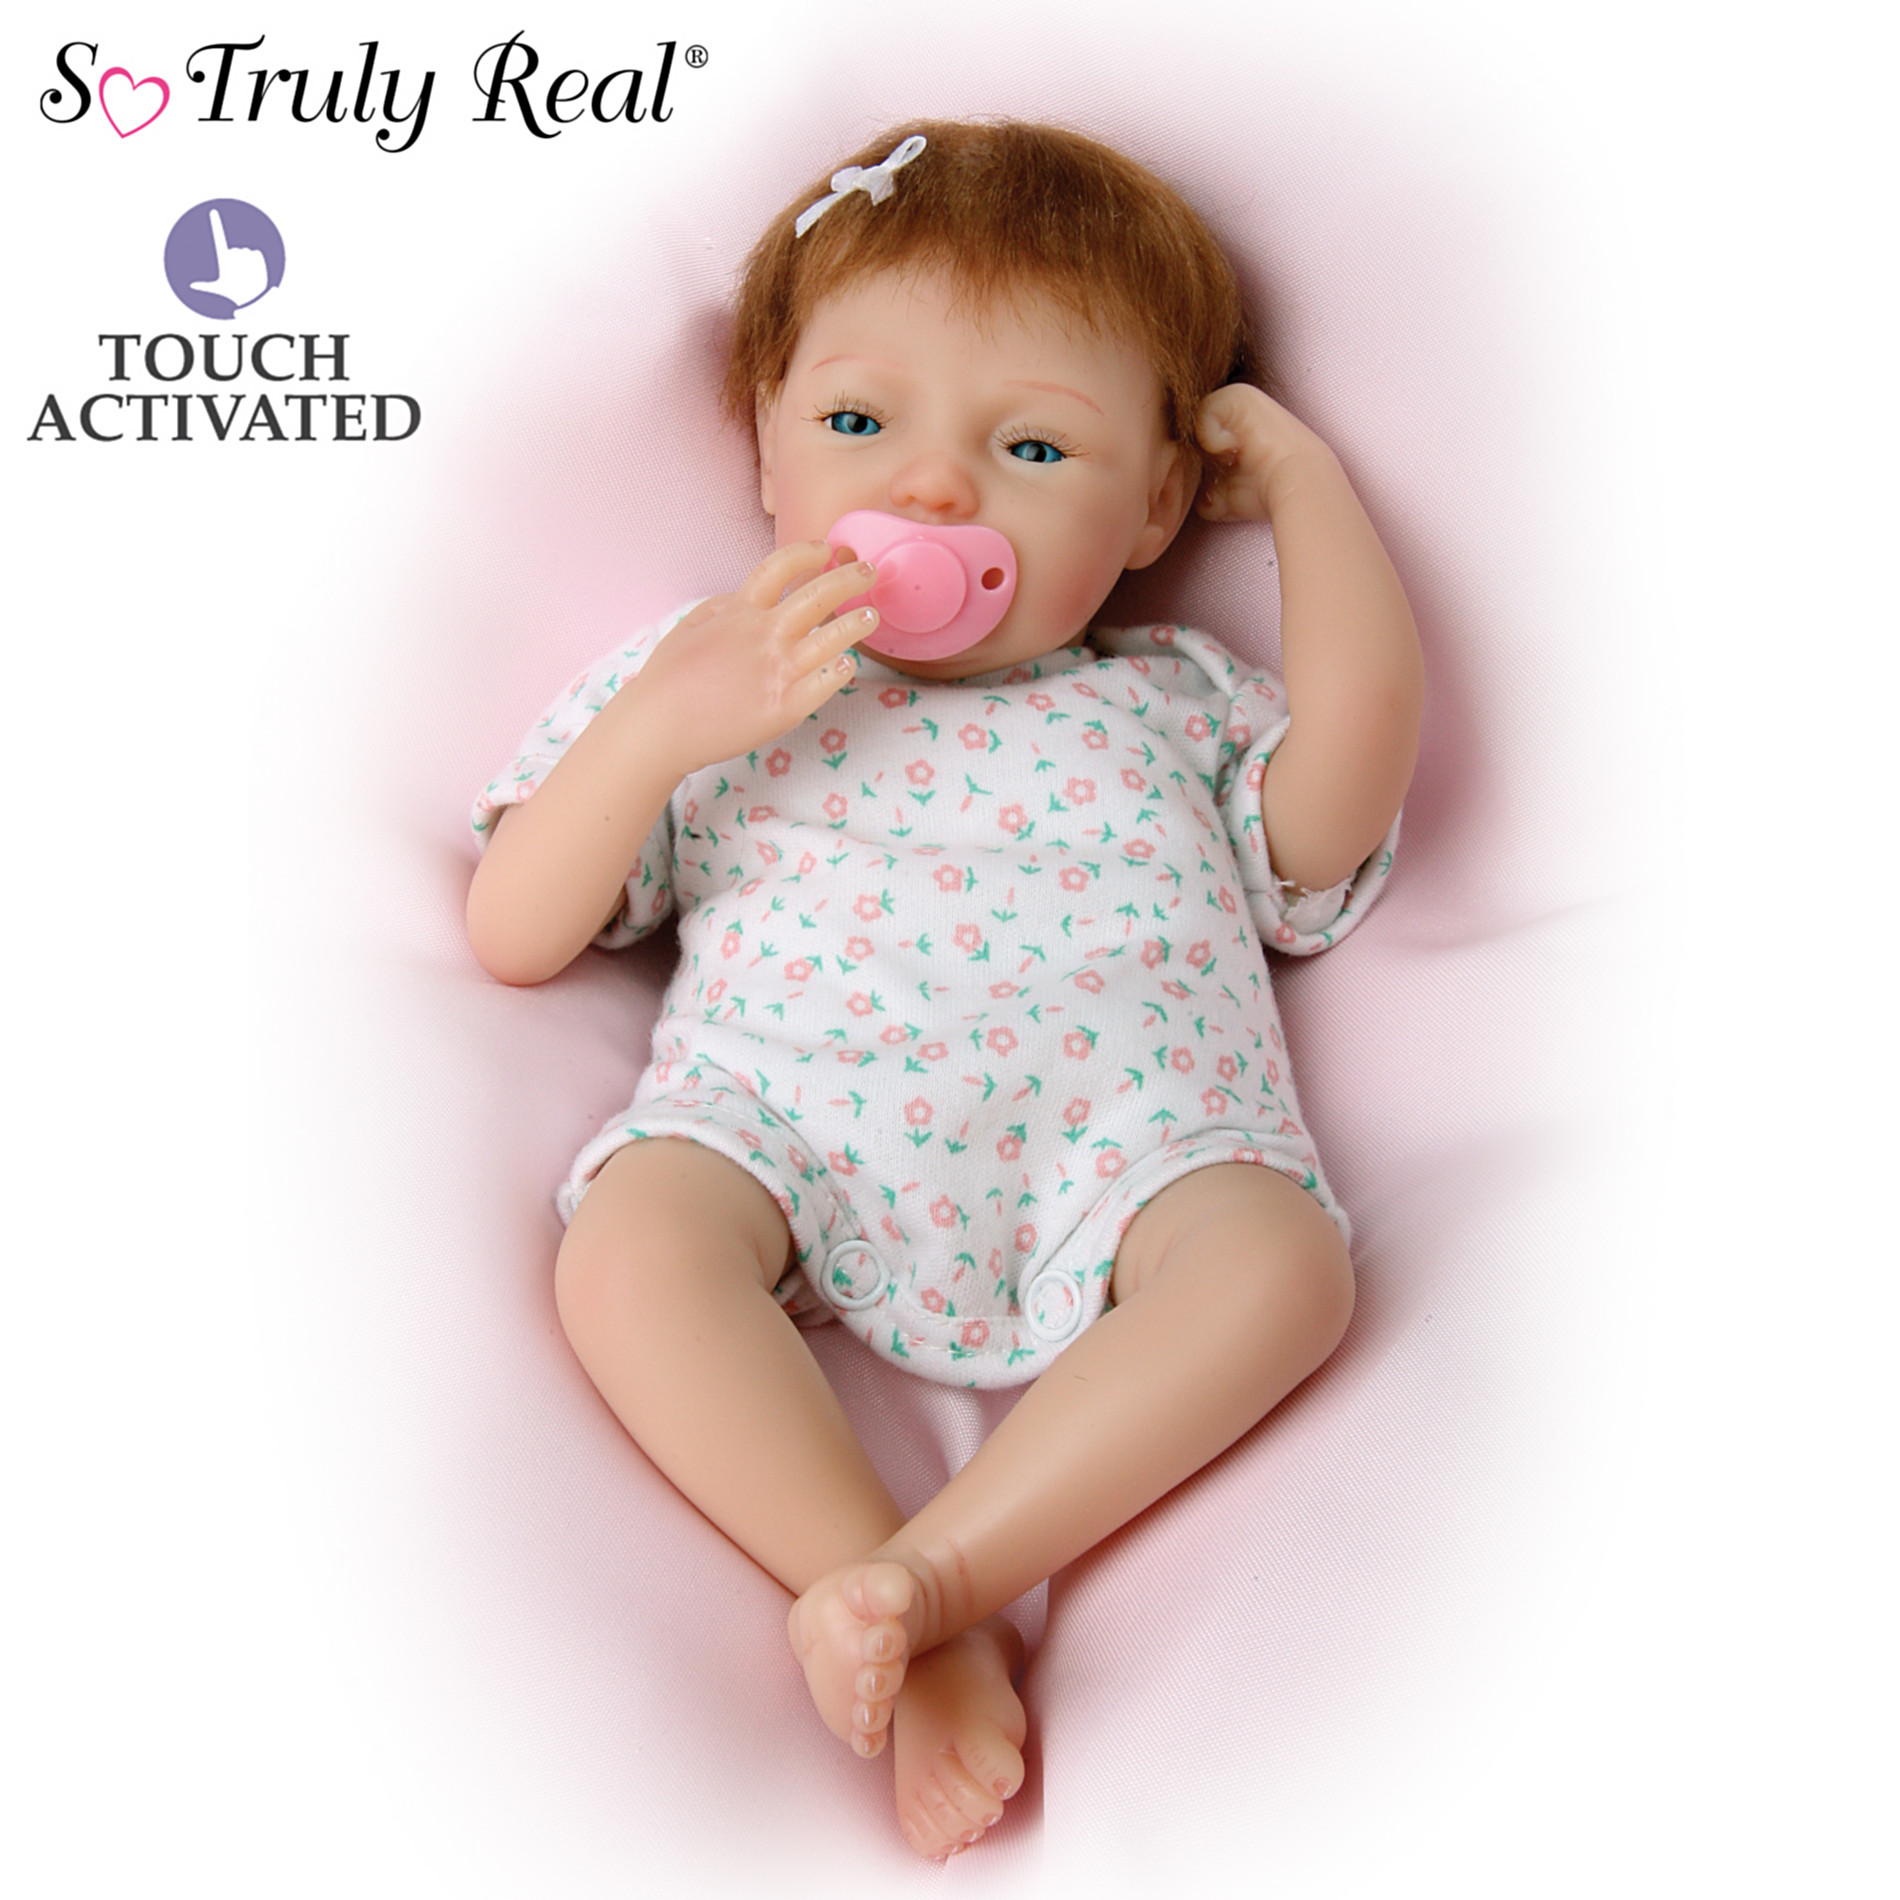 The Ashton-Drake Galleries Tiny Miracles Maggie Collectible Lifelike Miniature Breathing Baby Doll: So Truly Real at Sears.com